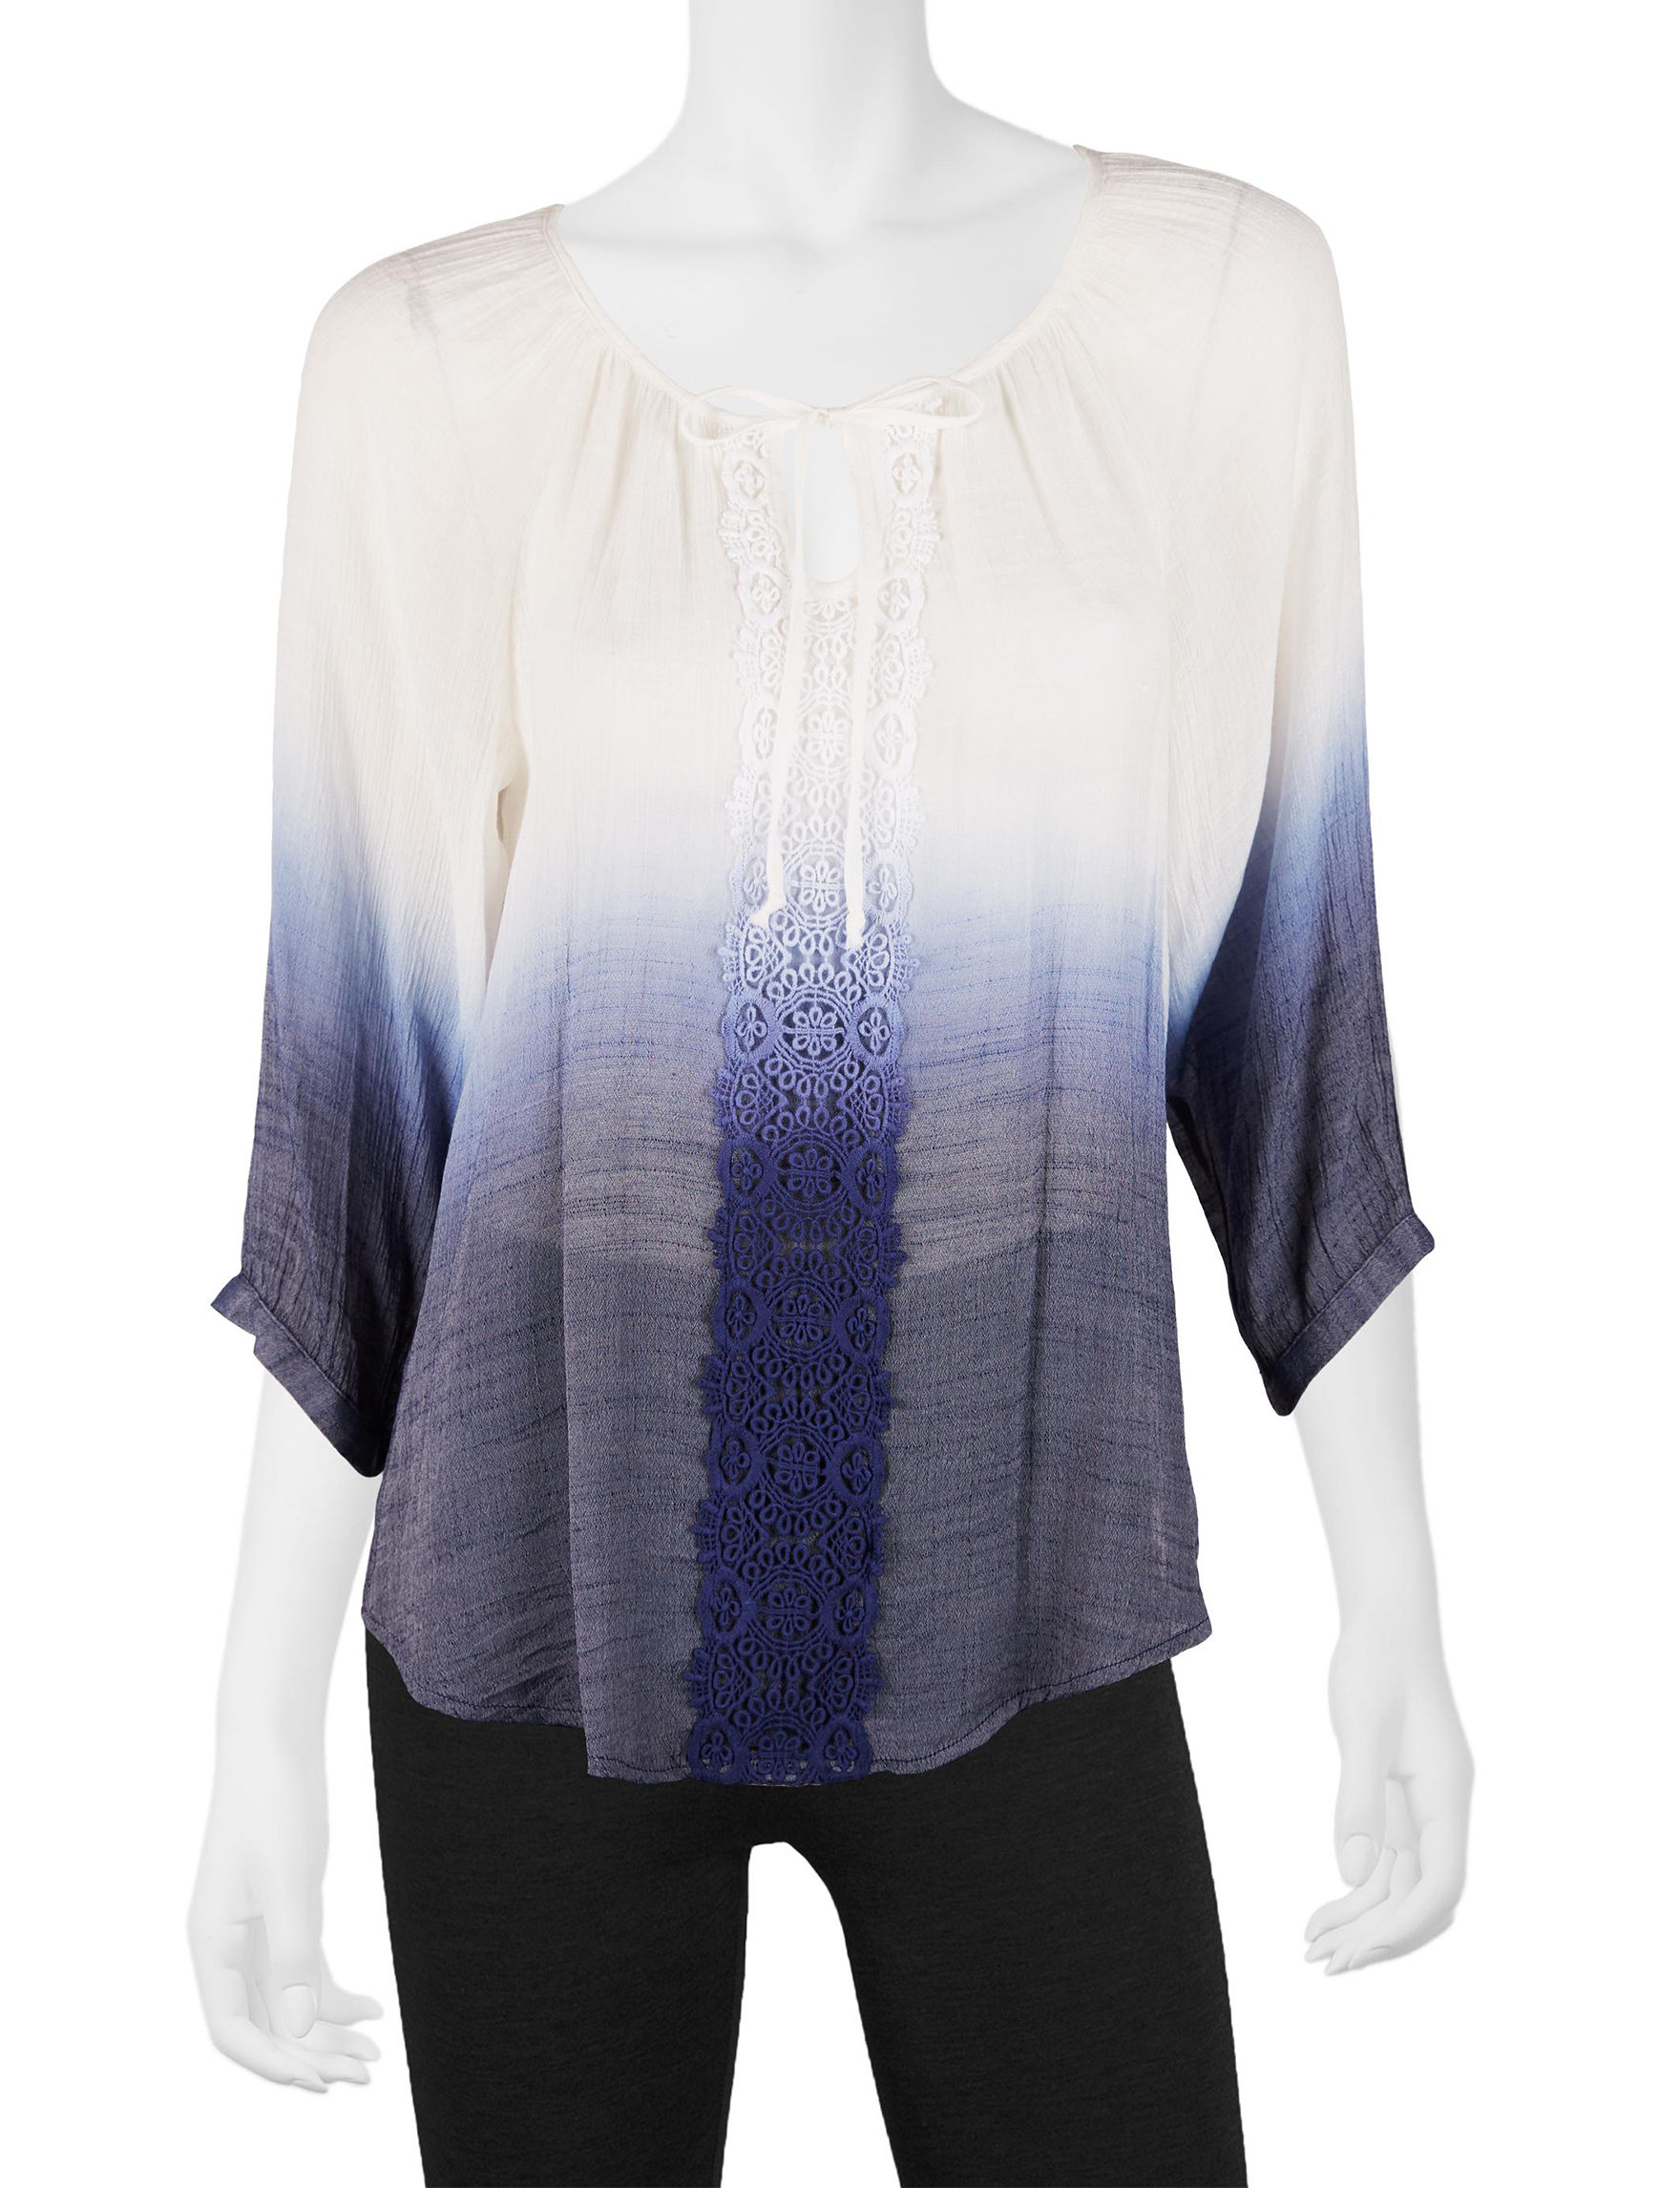 A. Byer White / Navy Shirts & Blouses